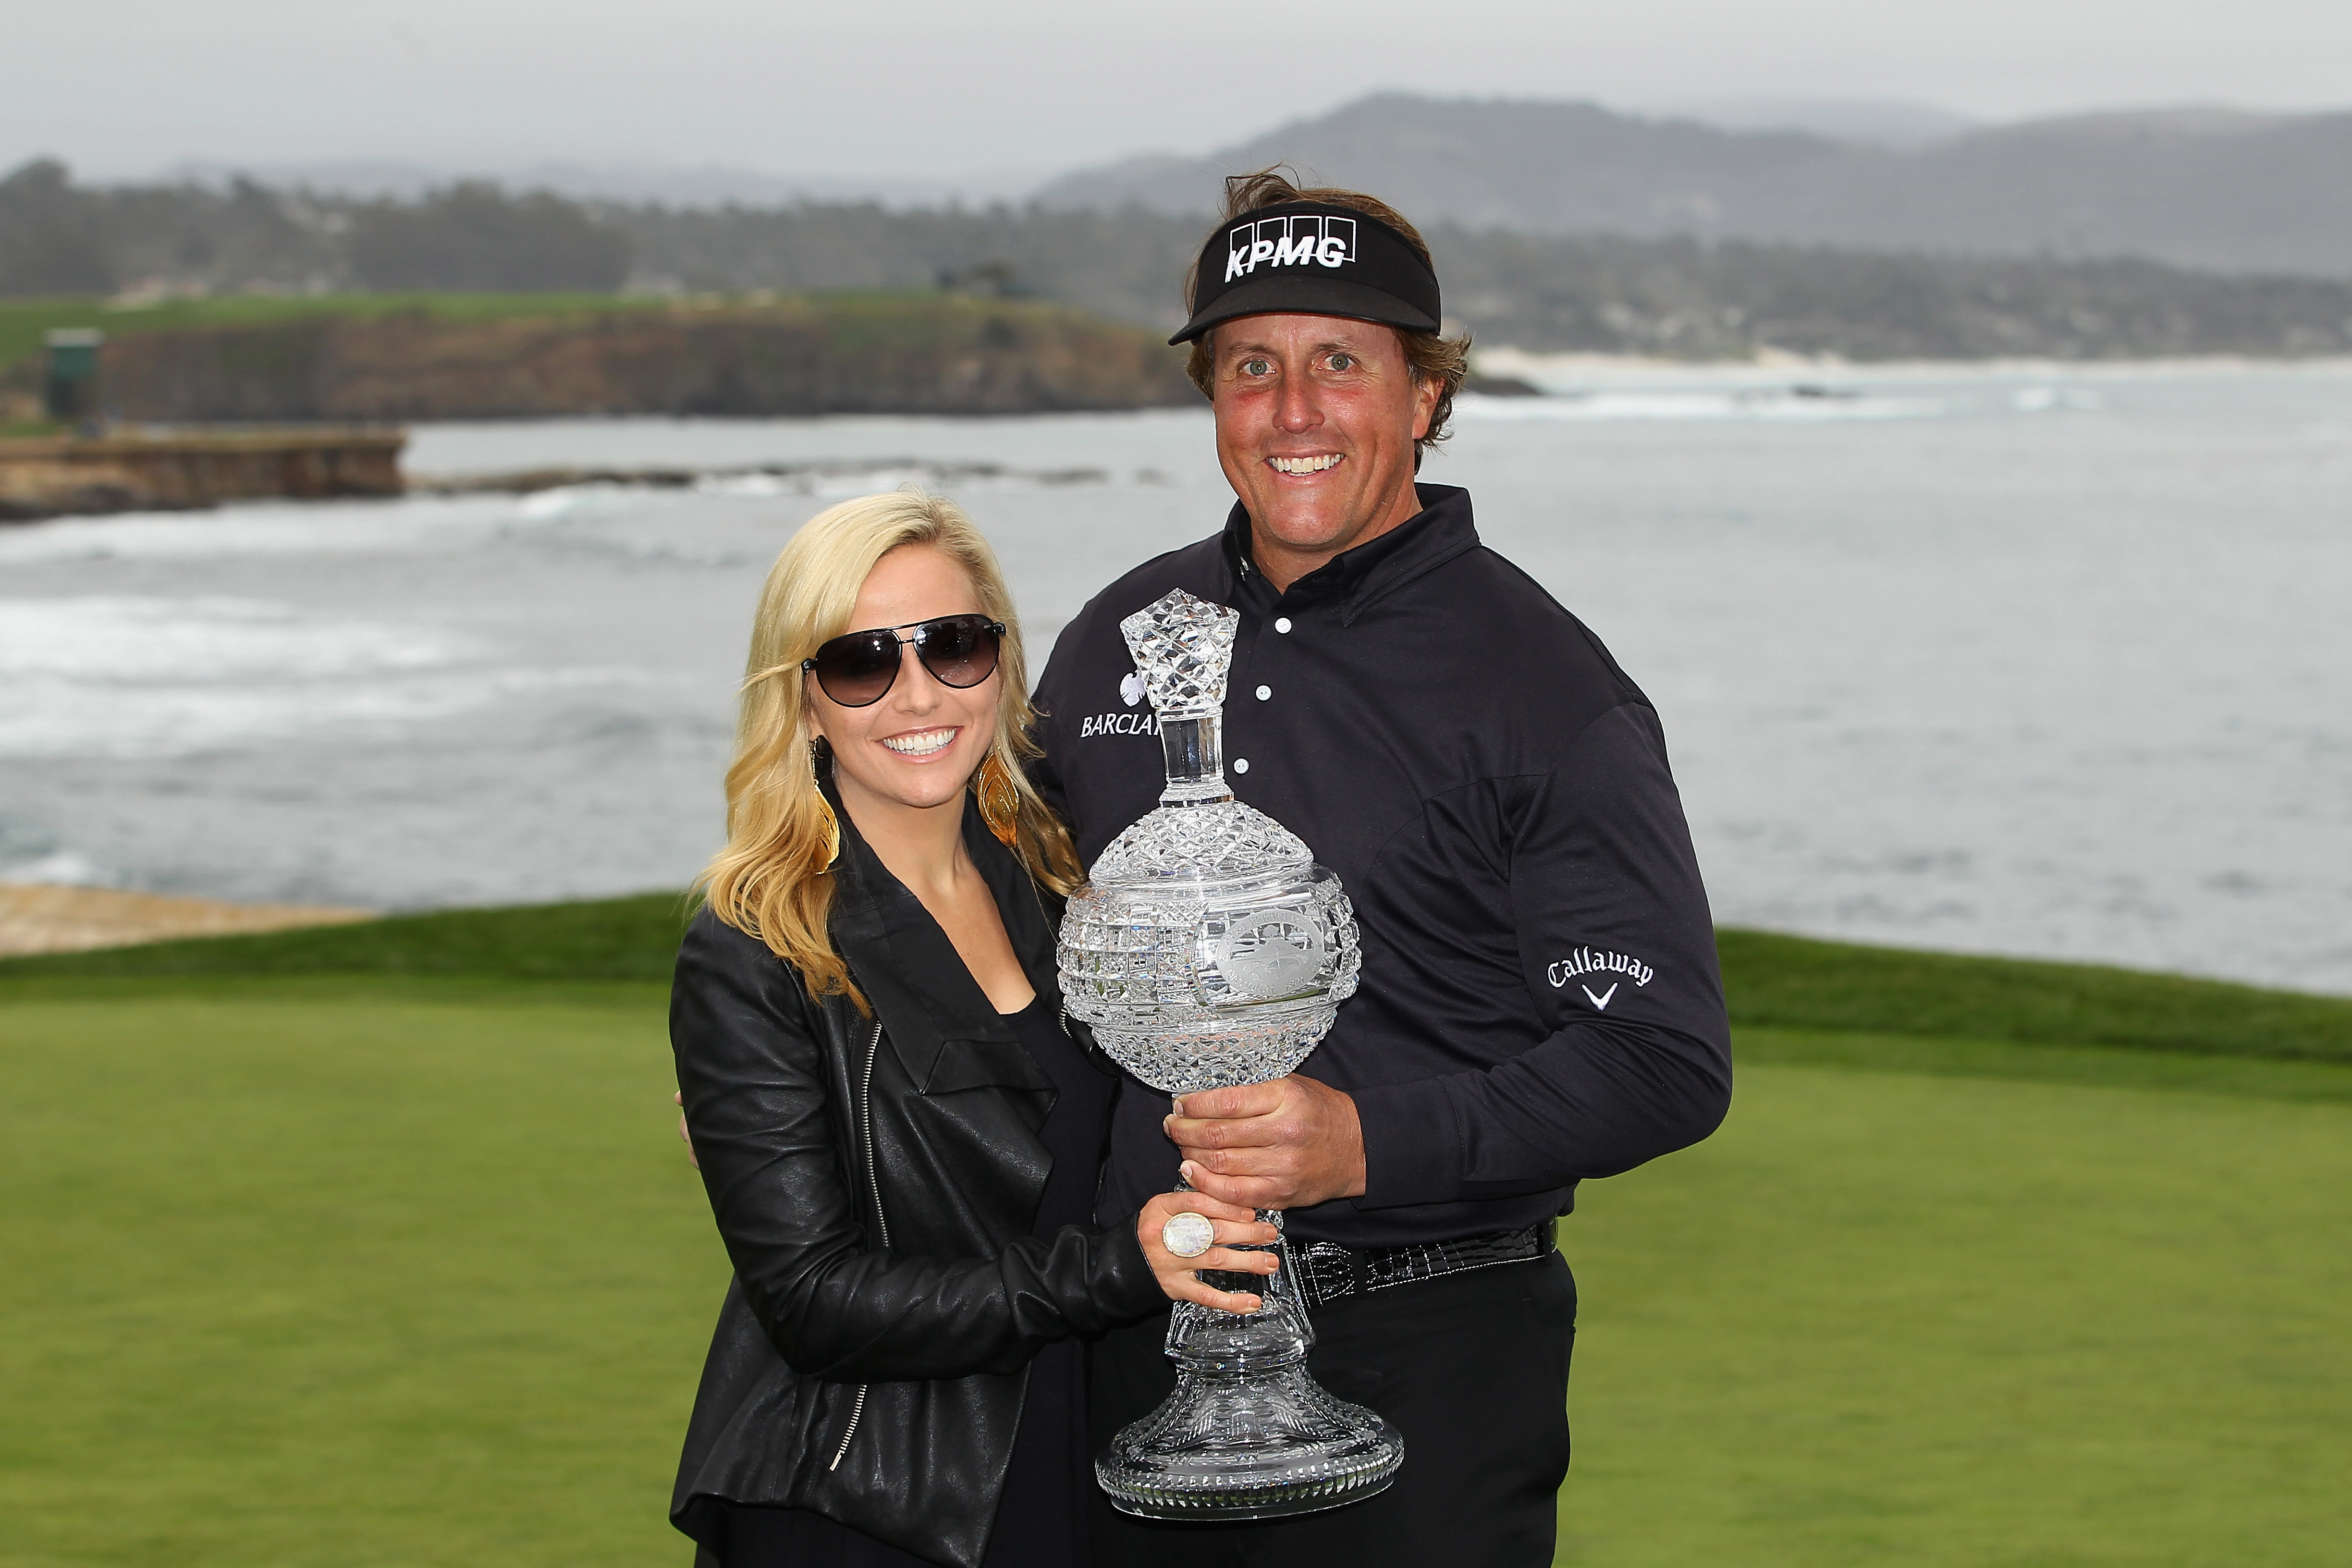 PEBBLE BEACH, CA - FEBRUARY 12: Phil Mickelson (R) celebrates with his wife Amy (L) while holding the tournament trophy after winning with an eight-under-par 64 during the AT&T Pebble Beach National Pro-Am at Pebble Beach Golf Links on February 12, 2012 in Pebble Beach, California. (Photo by Ezra Shaw/Getty Images)